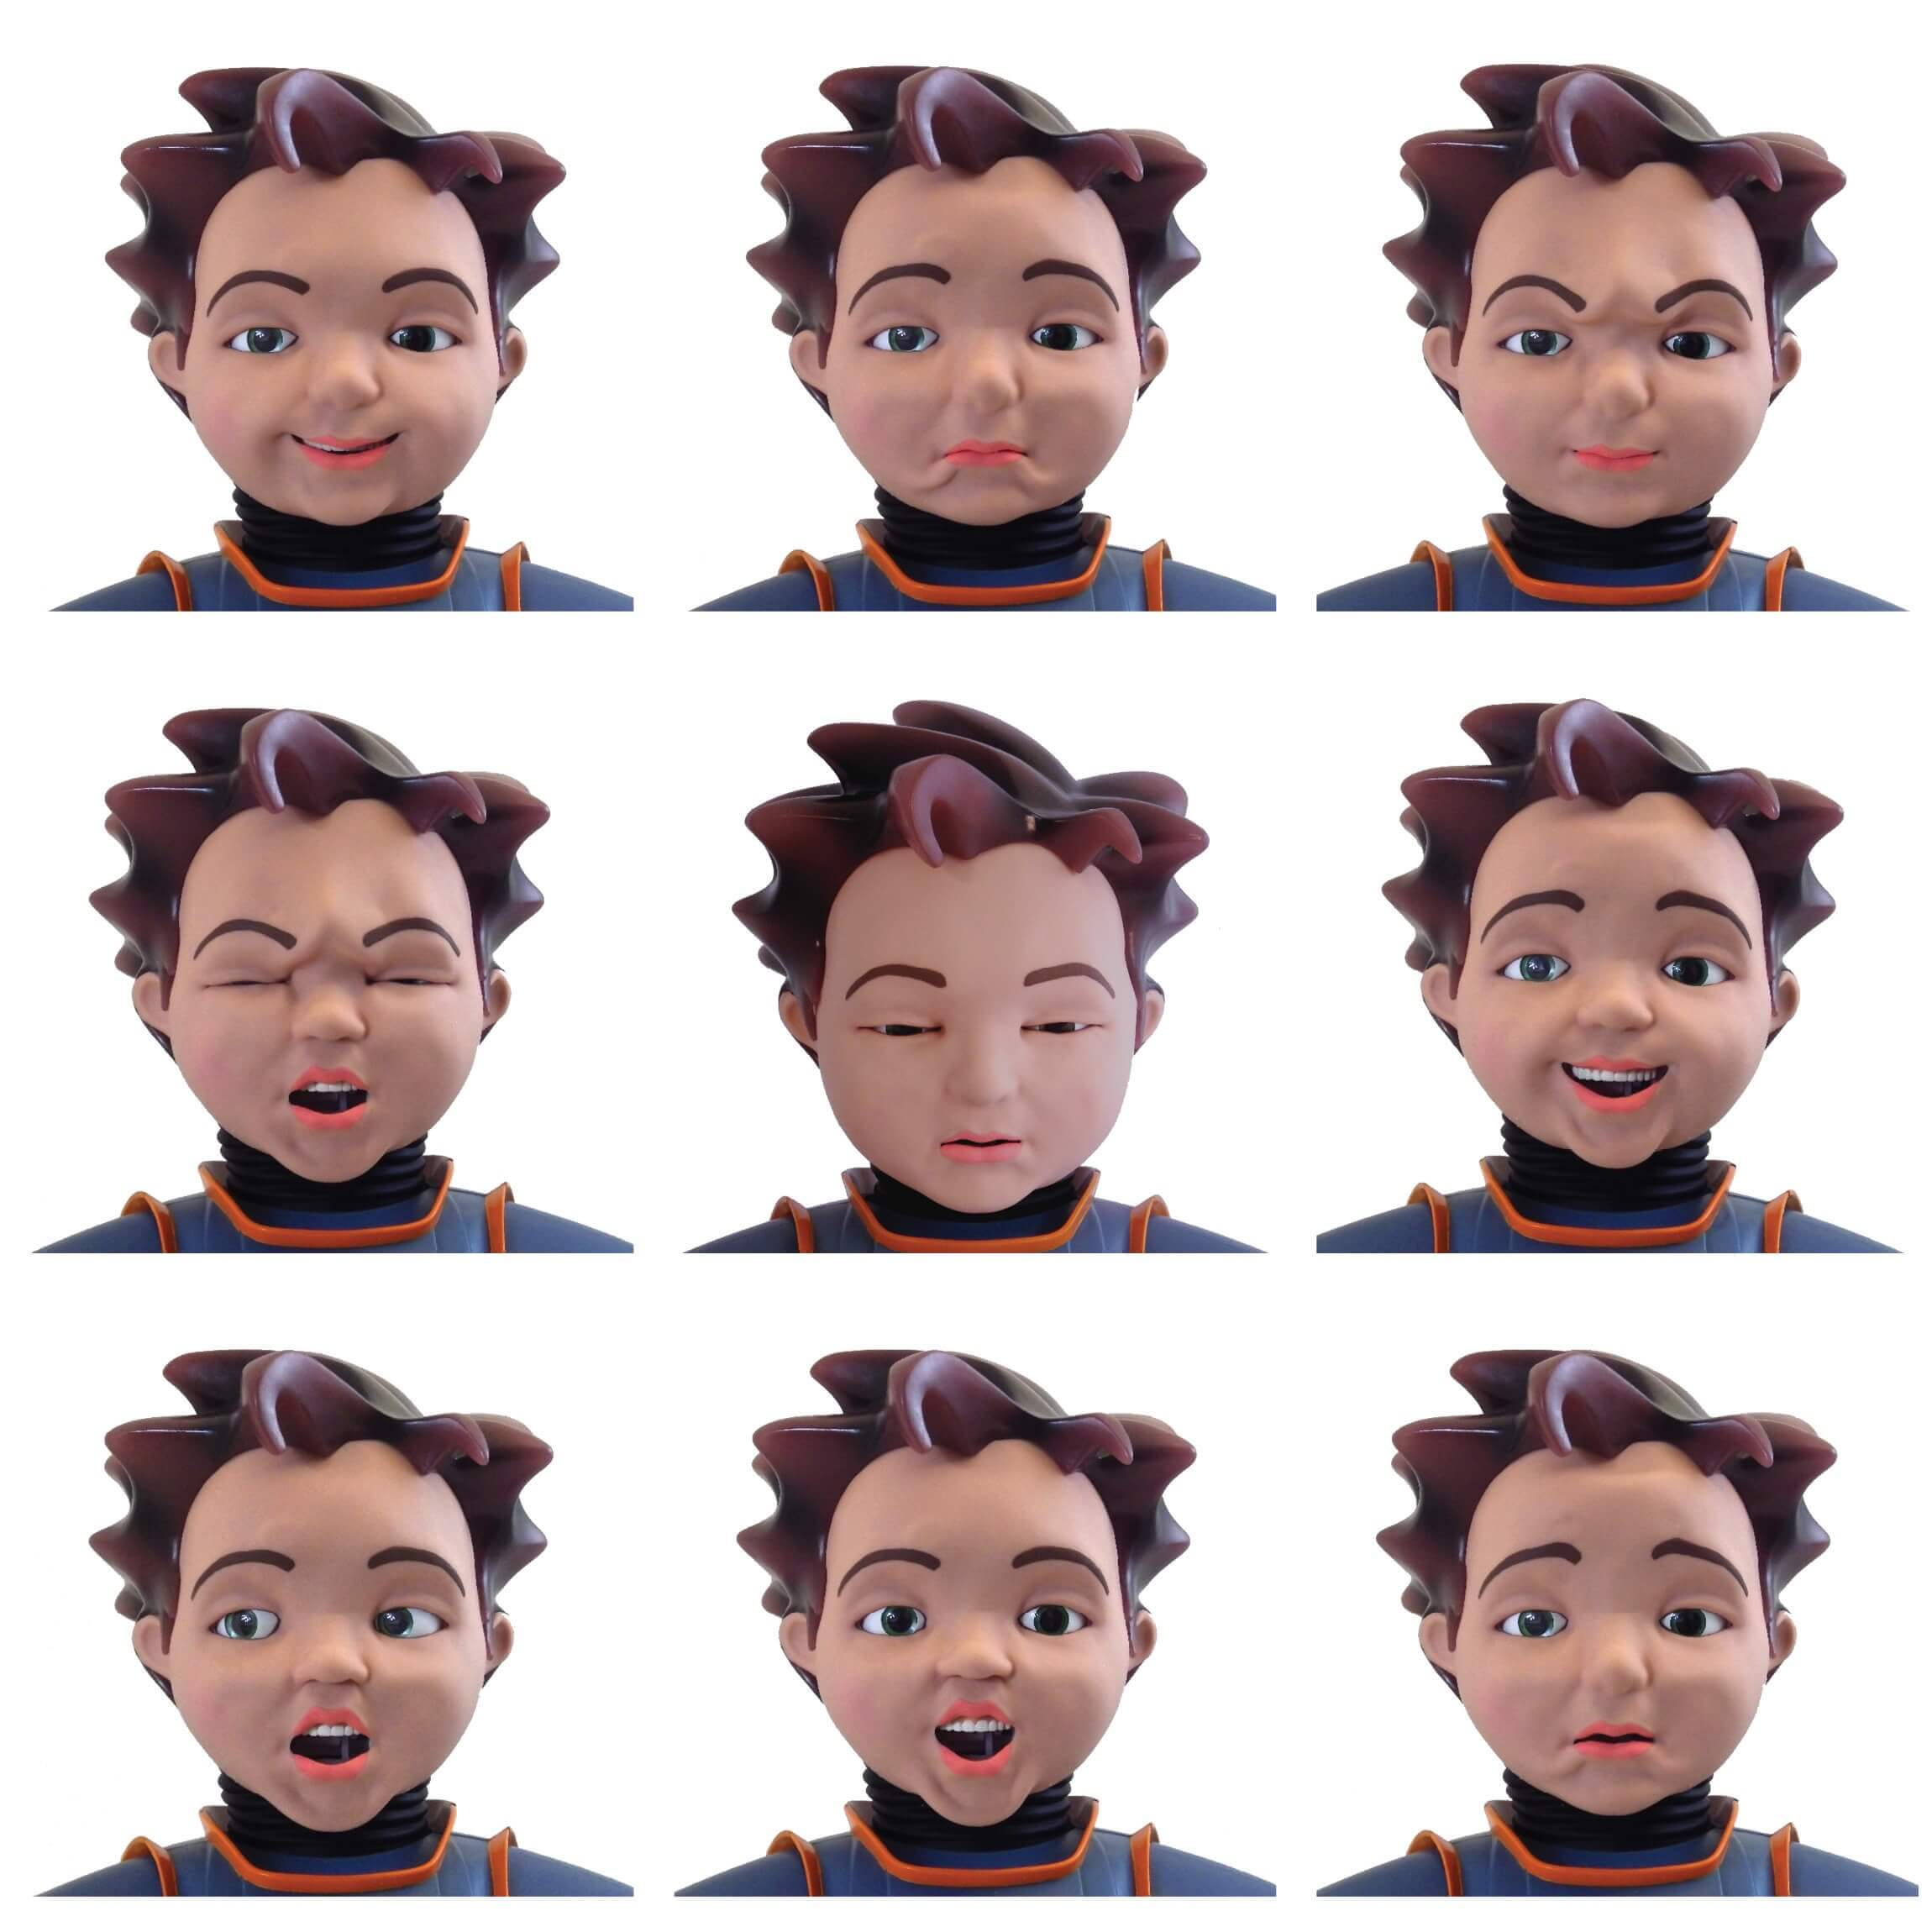 The many faces of RoboKind's Social-Emotional Robots